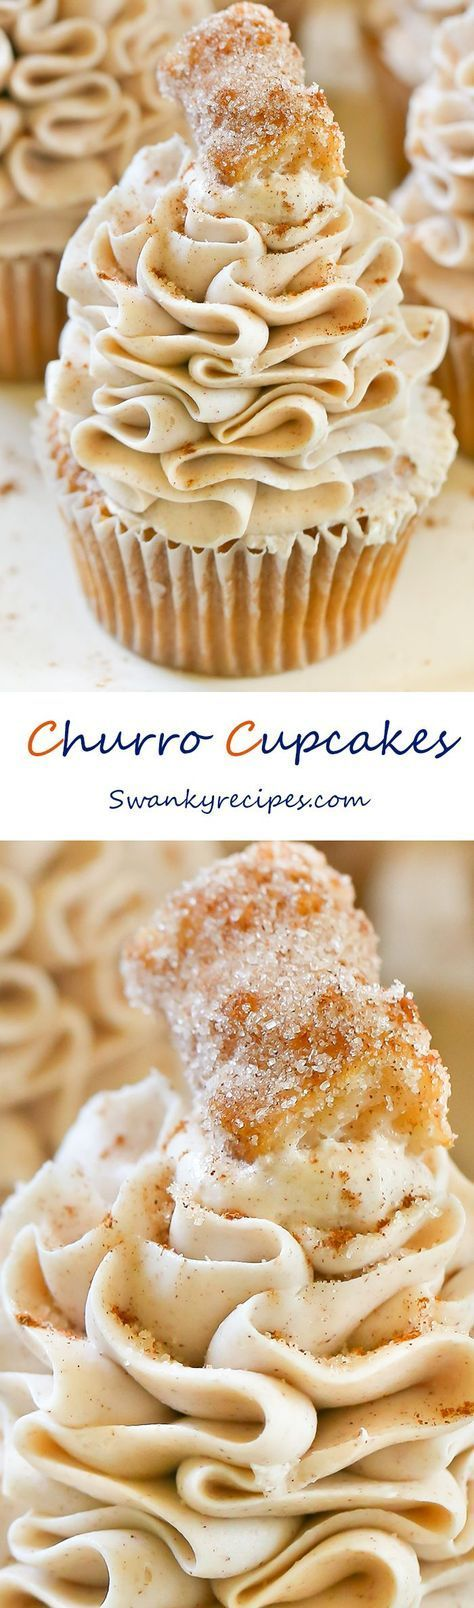 Churro Cupcakes - Dreamy cinnamon and vanilla cupcakes with Cinnabon Cinnamon Cream Cheese Frosting and a sugary churro on top! To date, these churro cupcakes are my favorite dessert yet!